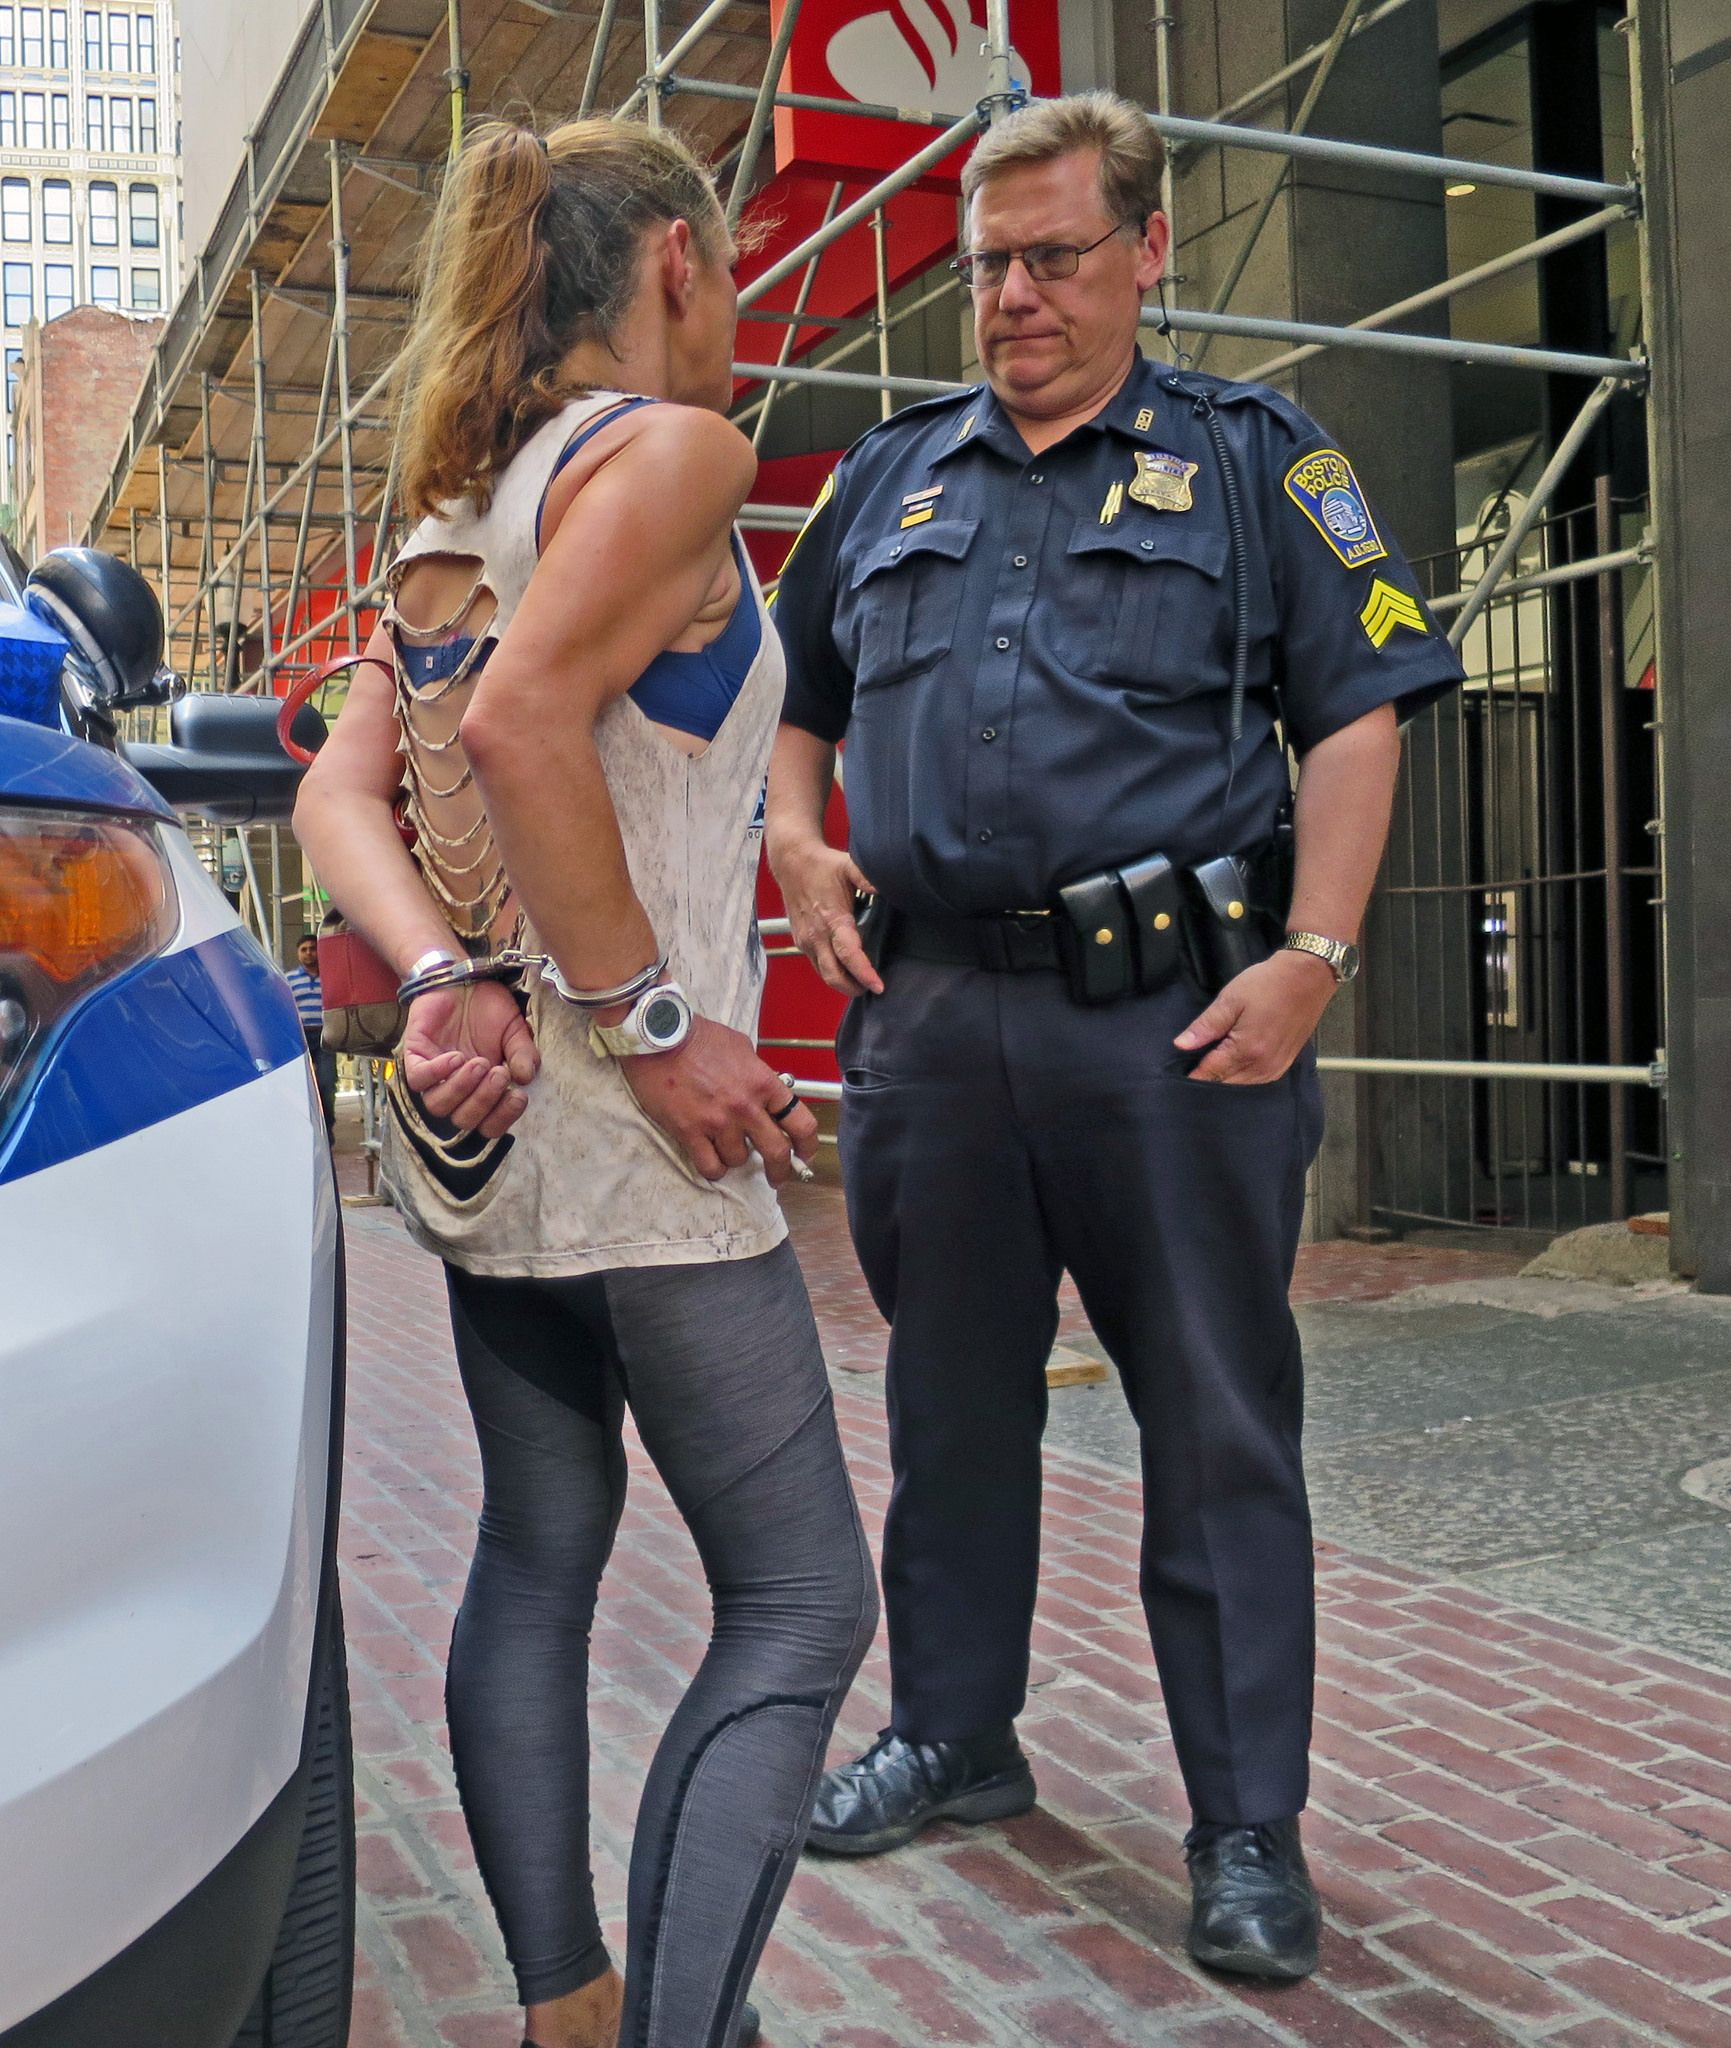 Two Young Women Arrested For Lesbian Kiss